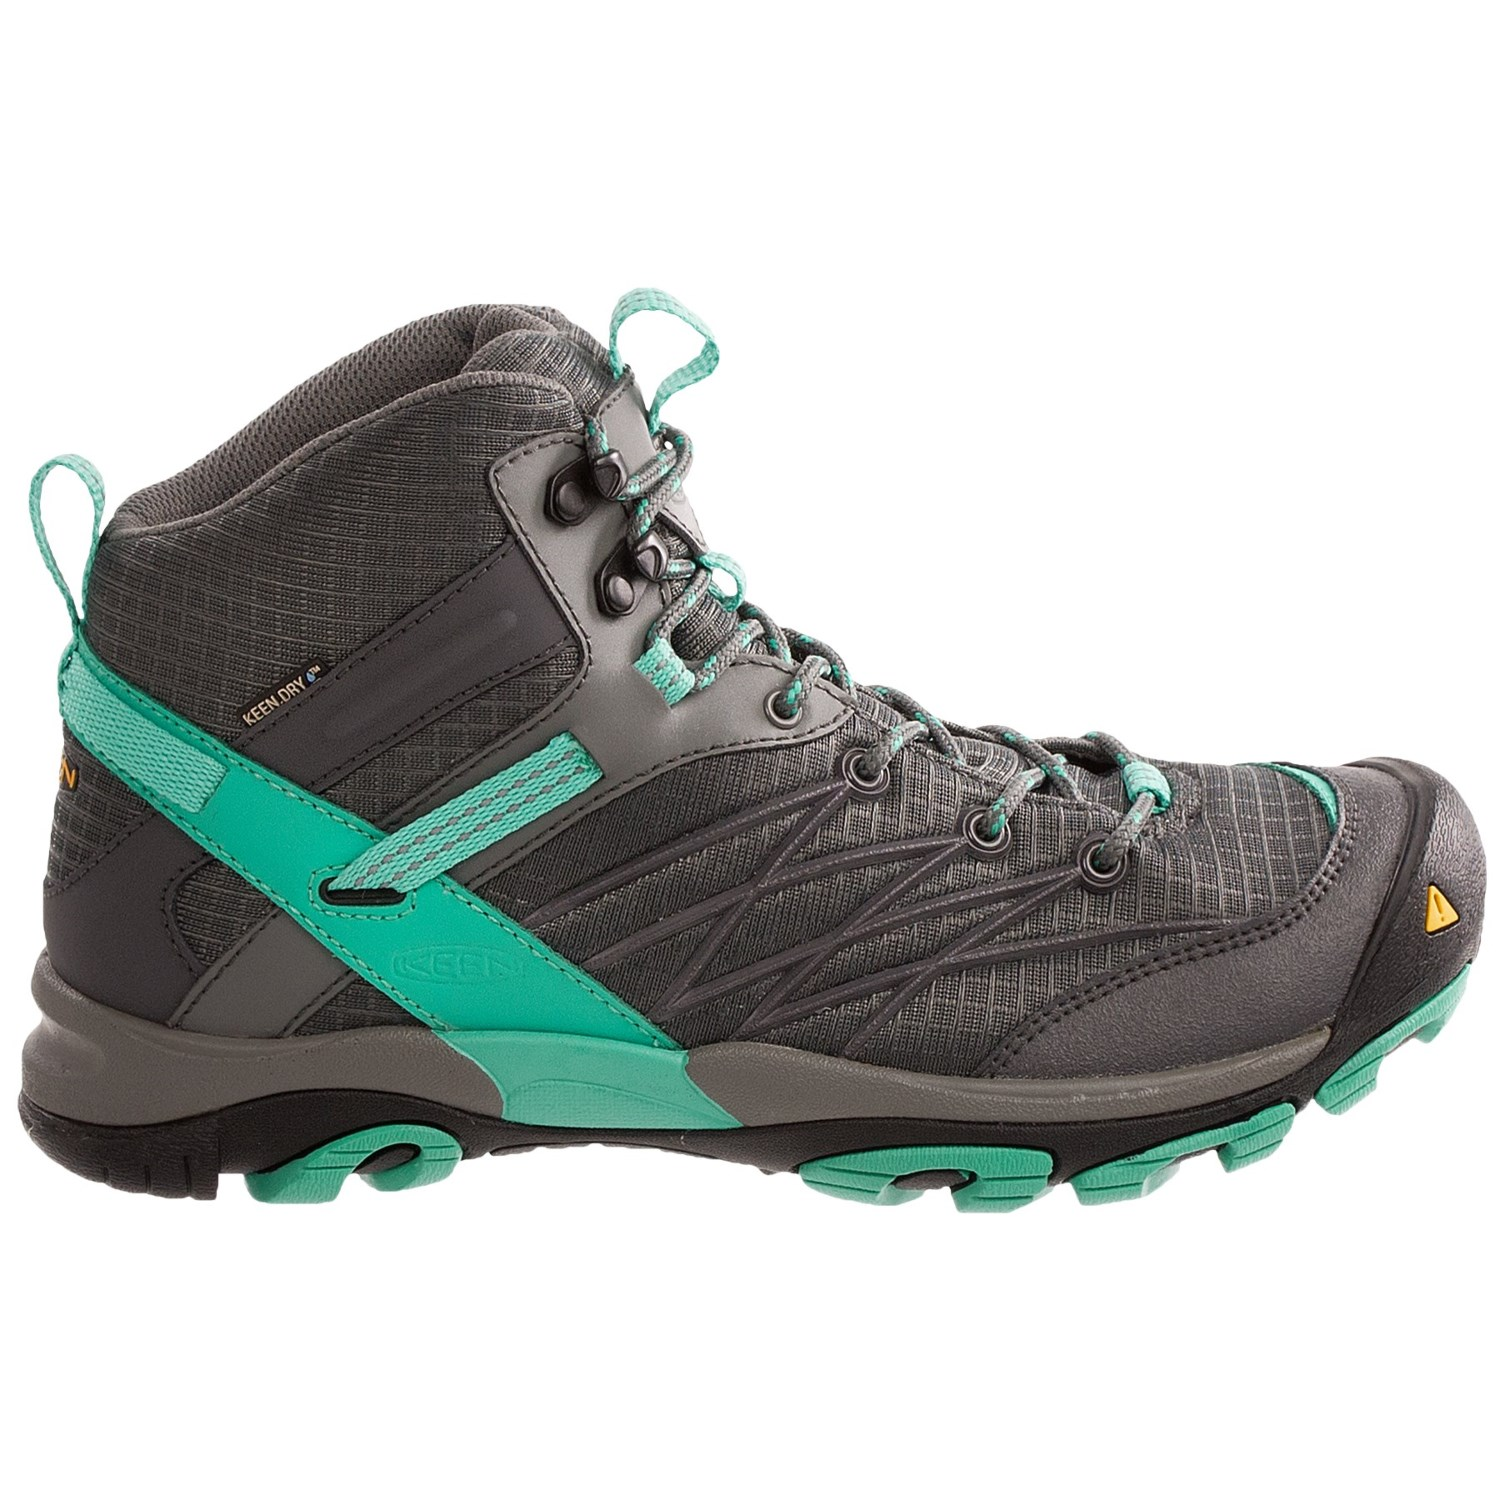 Awesome KEEN Womens Revel III Racing Red/Eggshell Waterproof Nubuck Leather Hiking Boot - KEEN From ...